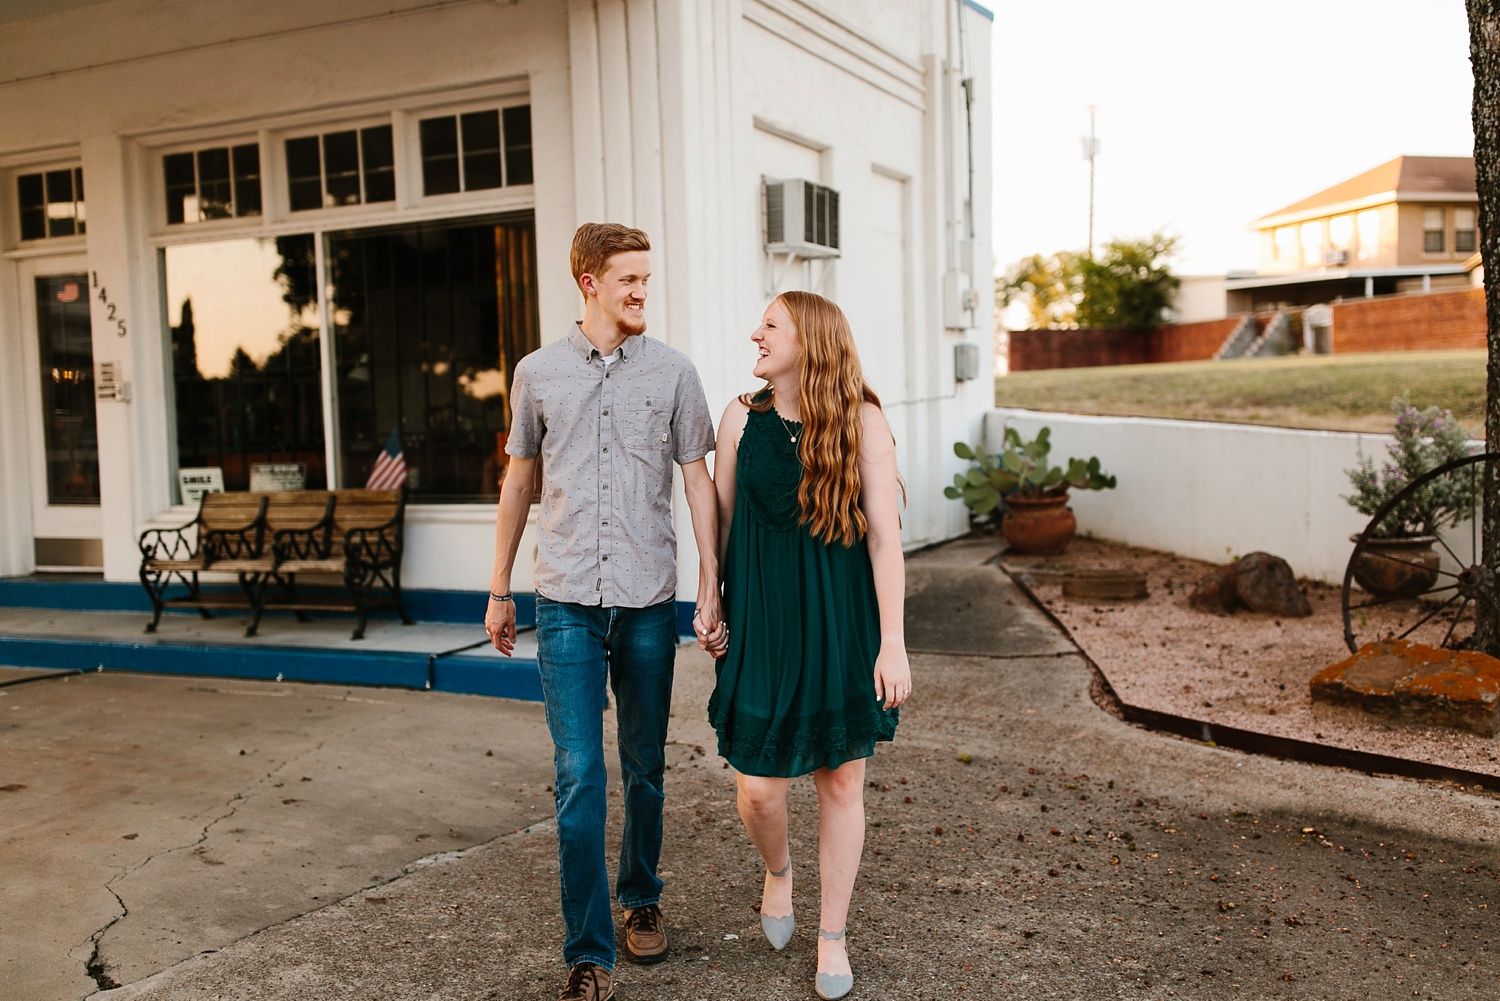 Kayla + Alex _ a joyful and loving engagement shoot in Waco, Texas by North Texas Wedding Photographer Rachel Meagan Photography _45